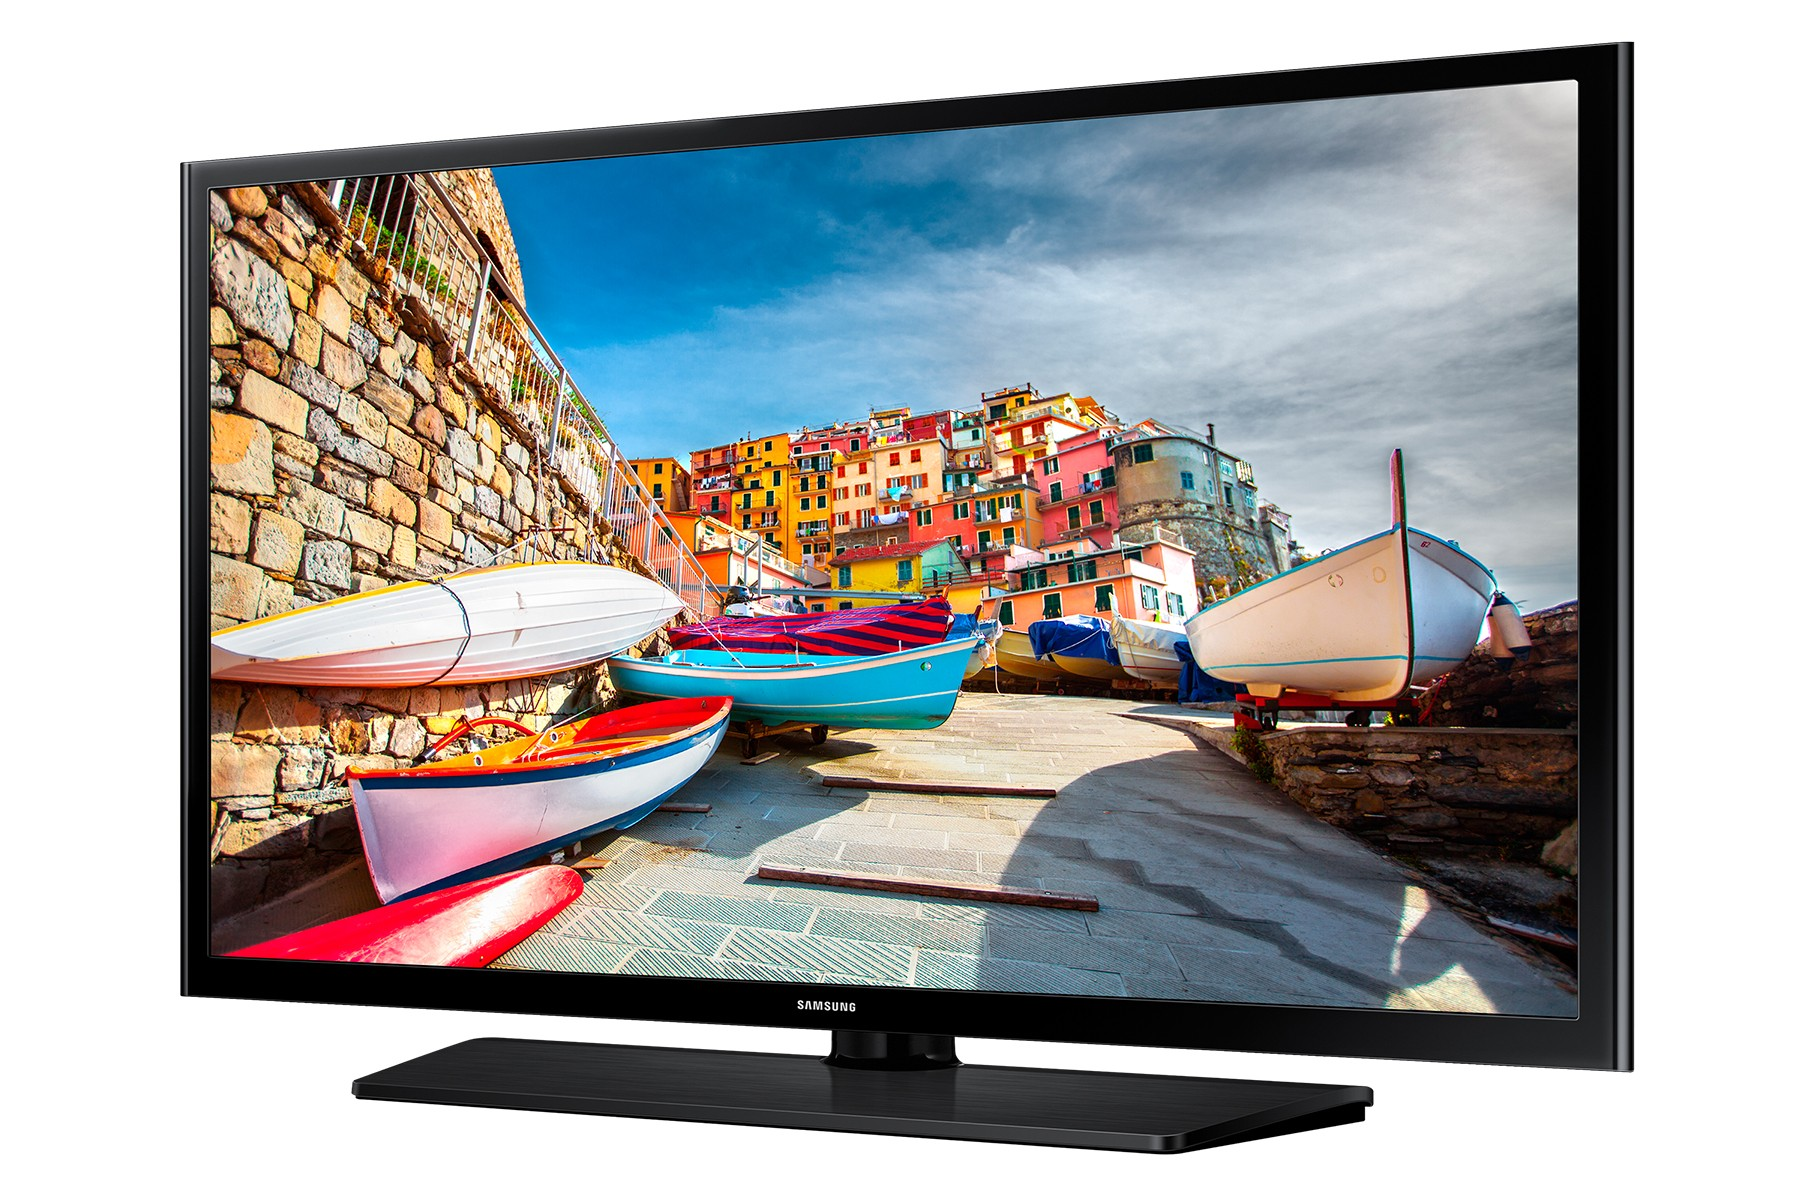 While Supplies Last: Buy 6, Get 1 Free on Samsung 55-inch TVs